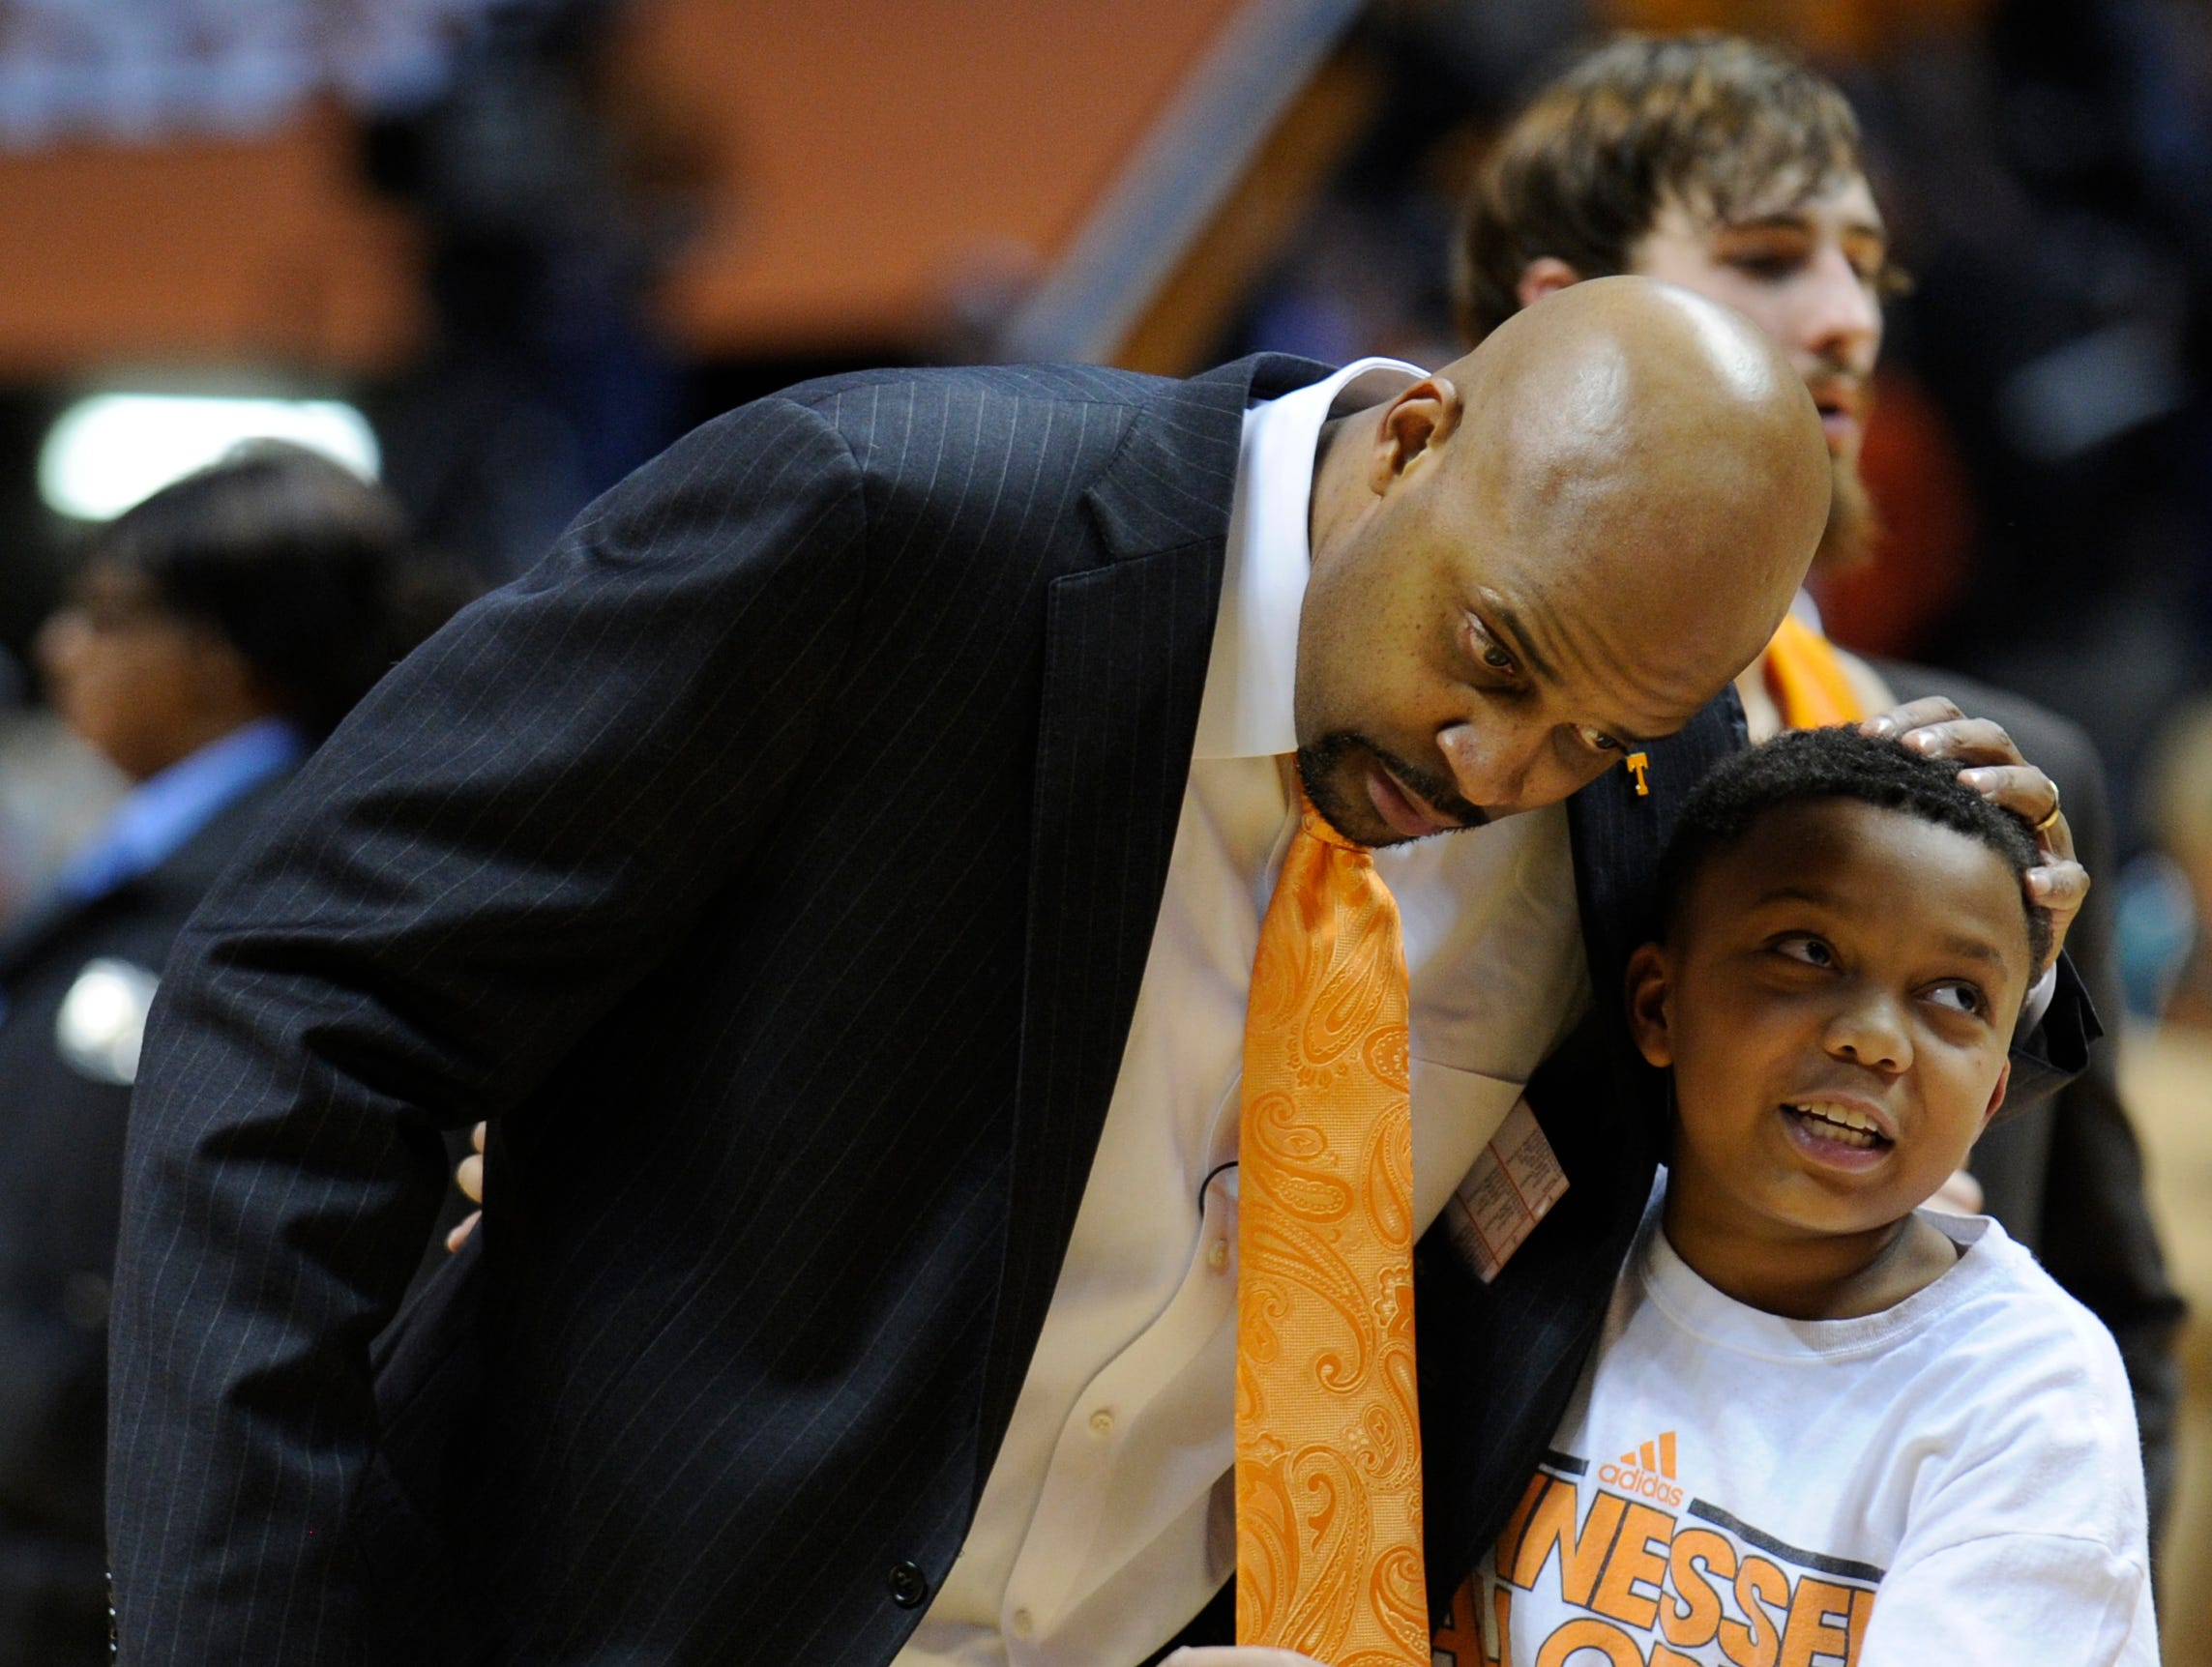 Tennessee head coach Cuonzo Martin is greeted by his son Chase after the game against Memphis at Thompson-Boling Arena, Friday, Jan. 4, 2012. UT lost 85-80.